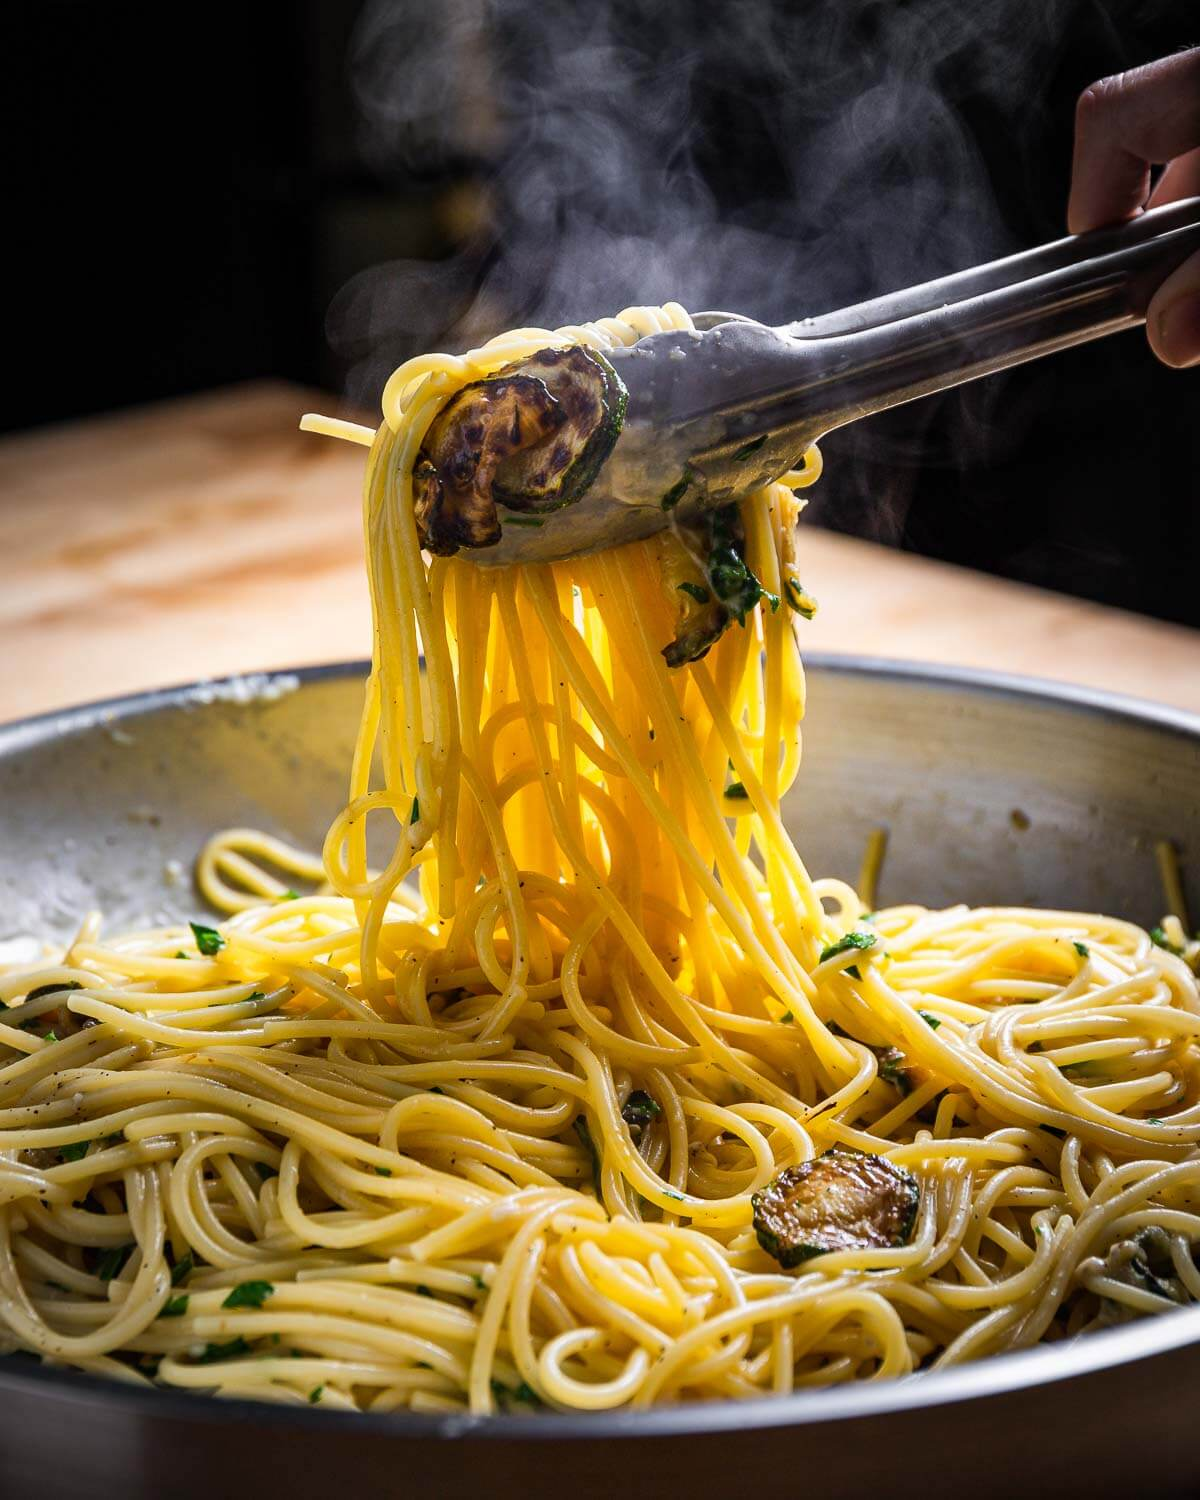 Spaghetti being pulled out of pan and held in tongs.